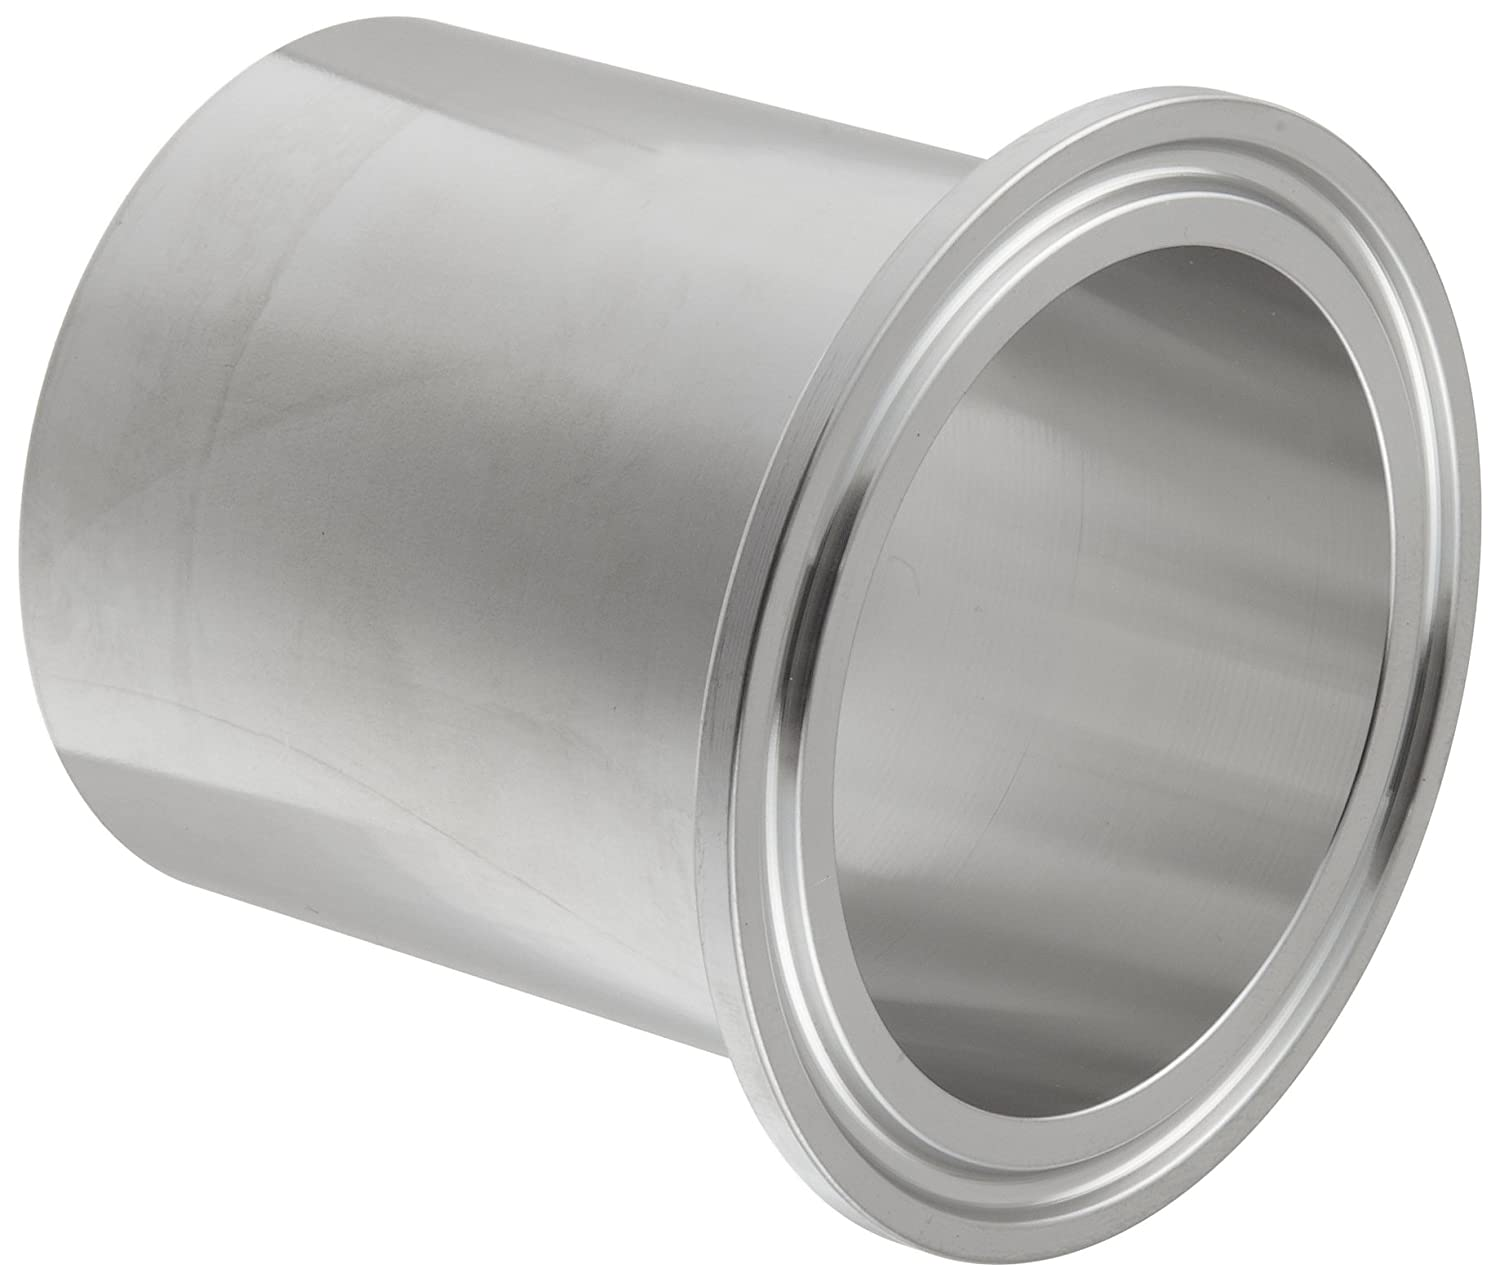 Dixon TL14AM7-100PL Stainless Steel 316L Sanitary Fitting 1 Tube OD 1 Tube OD Dixon Valve /& Coupling Automatic Weld Clamp Ferrule